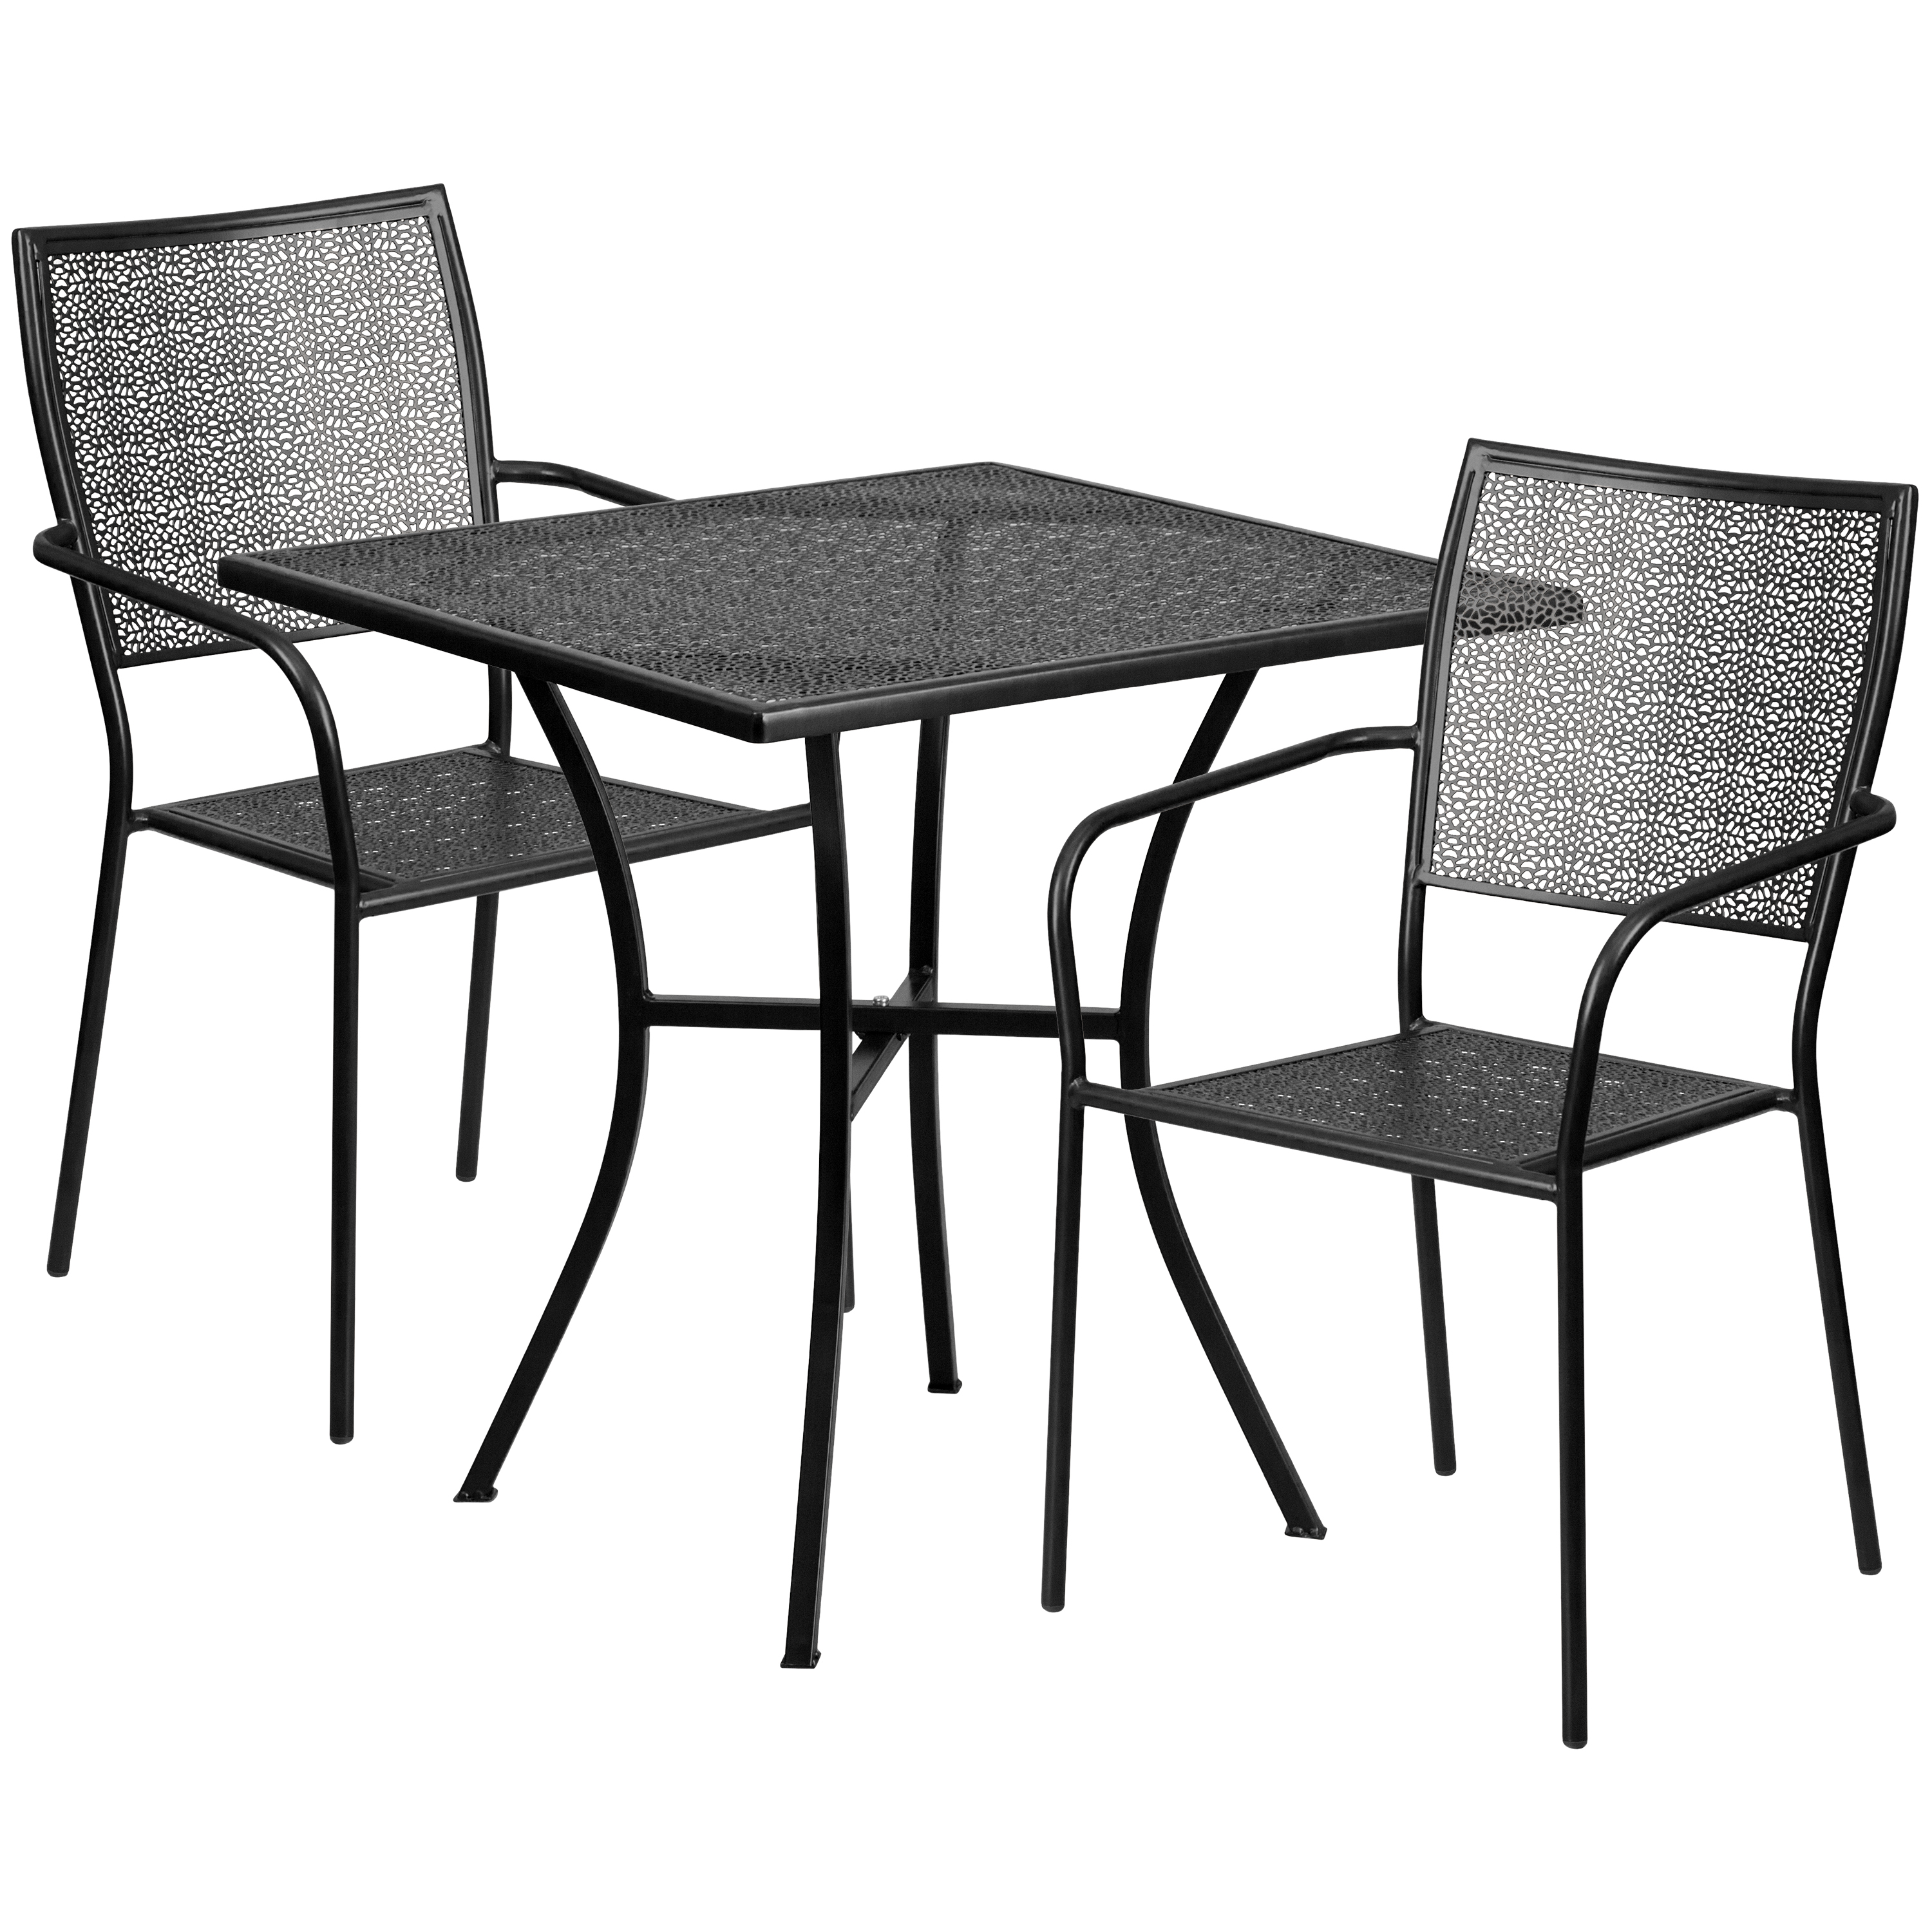 Flash Furniture 28'' Square Indoor-Outdoor Steel Patio Table Set with 2 Square Back Chairs, Multiple Colors